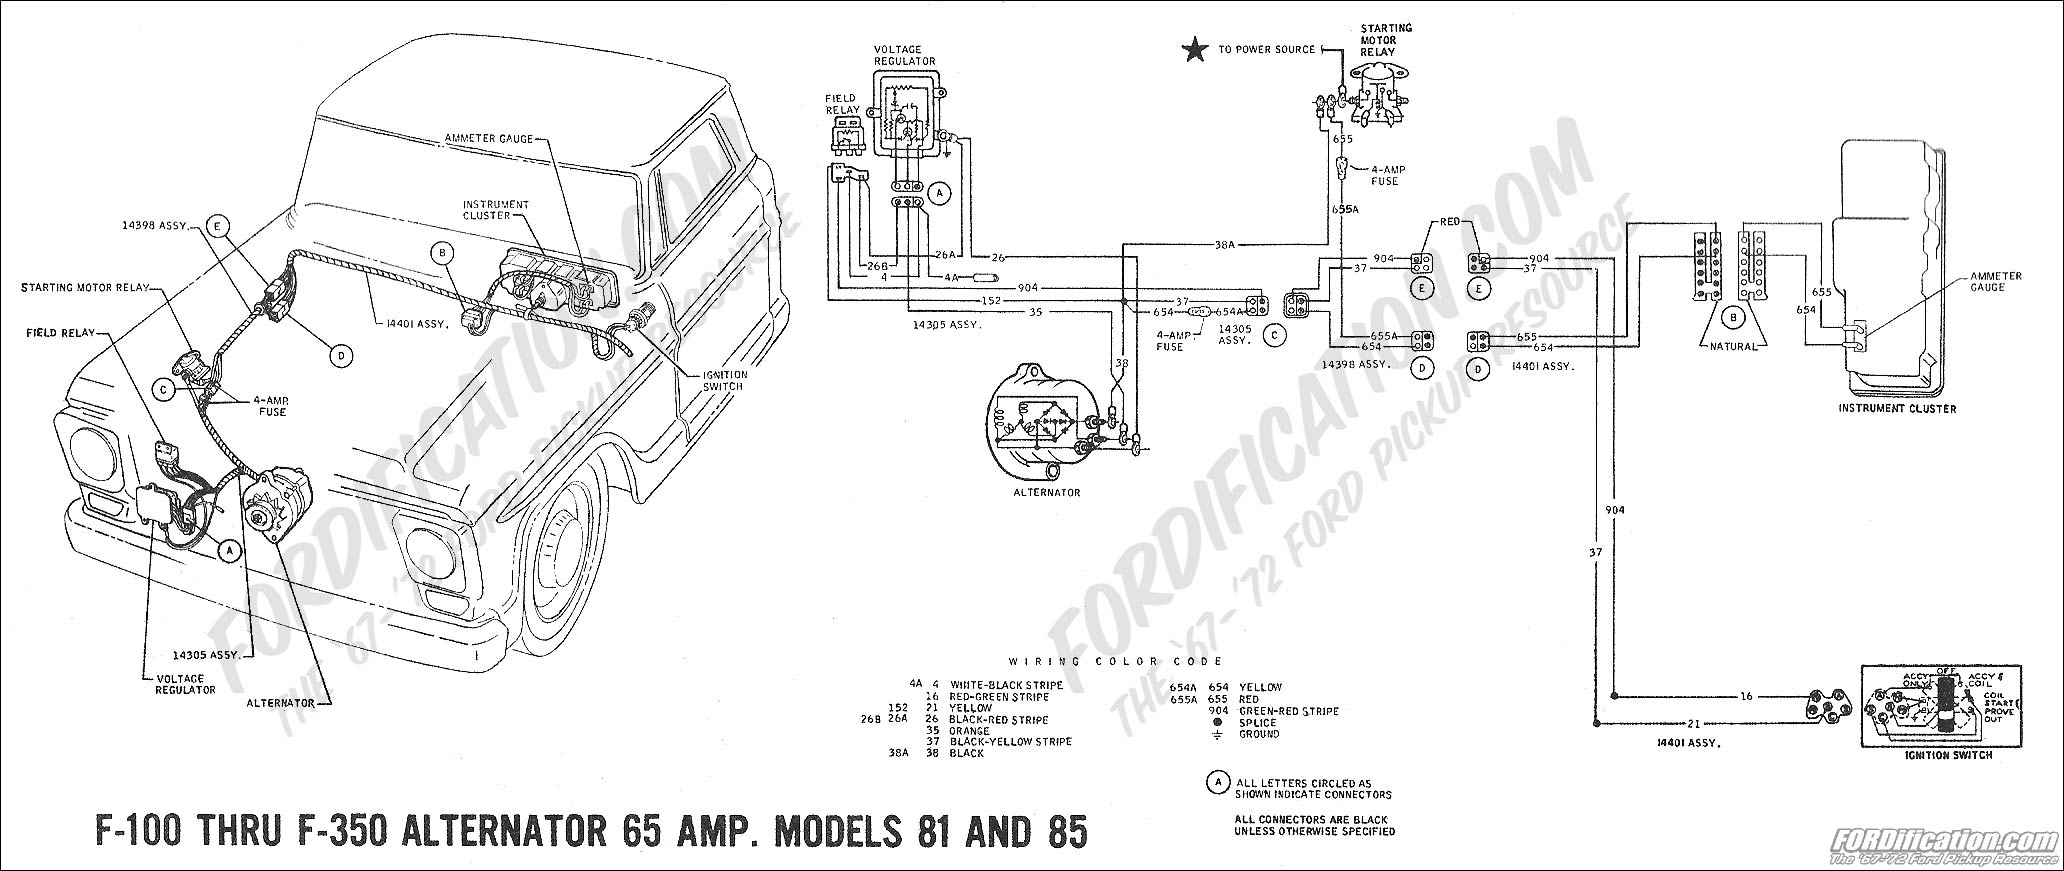 wiring diagram for 1980 ford alternator  u2013 readingrat net